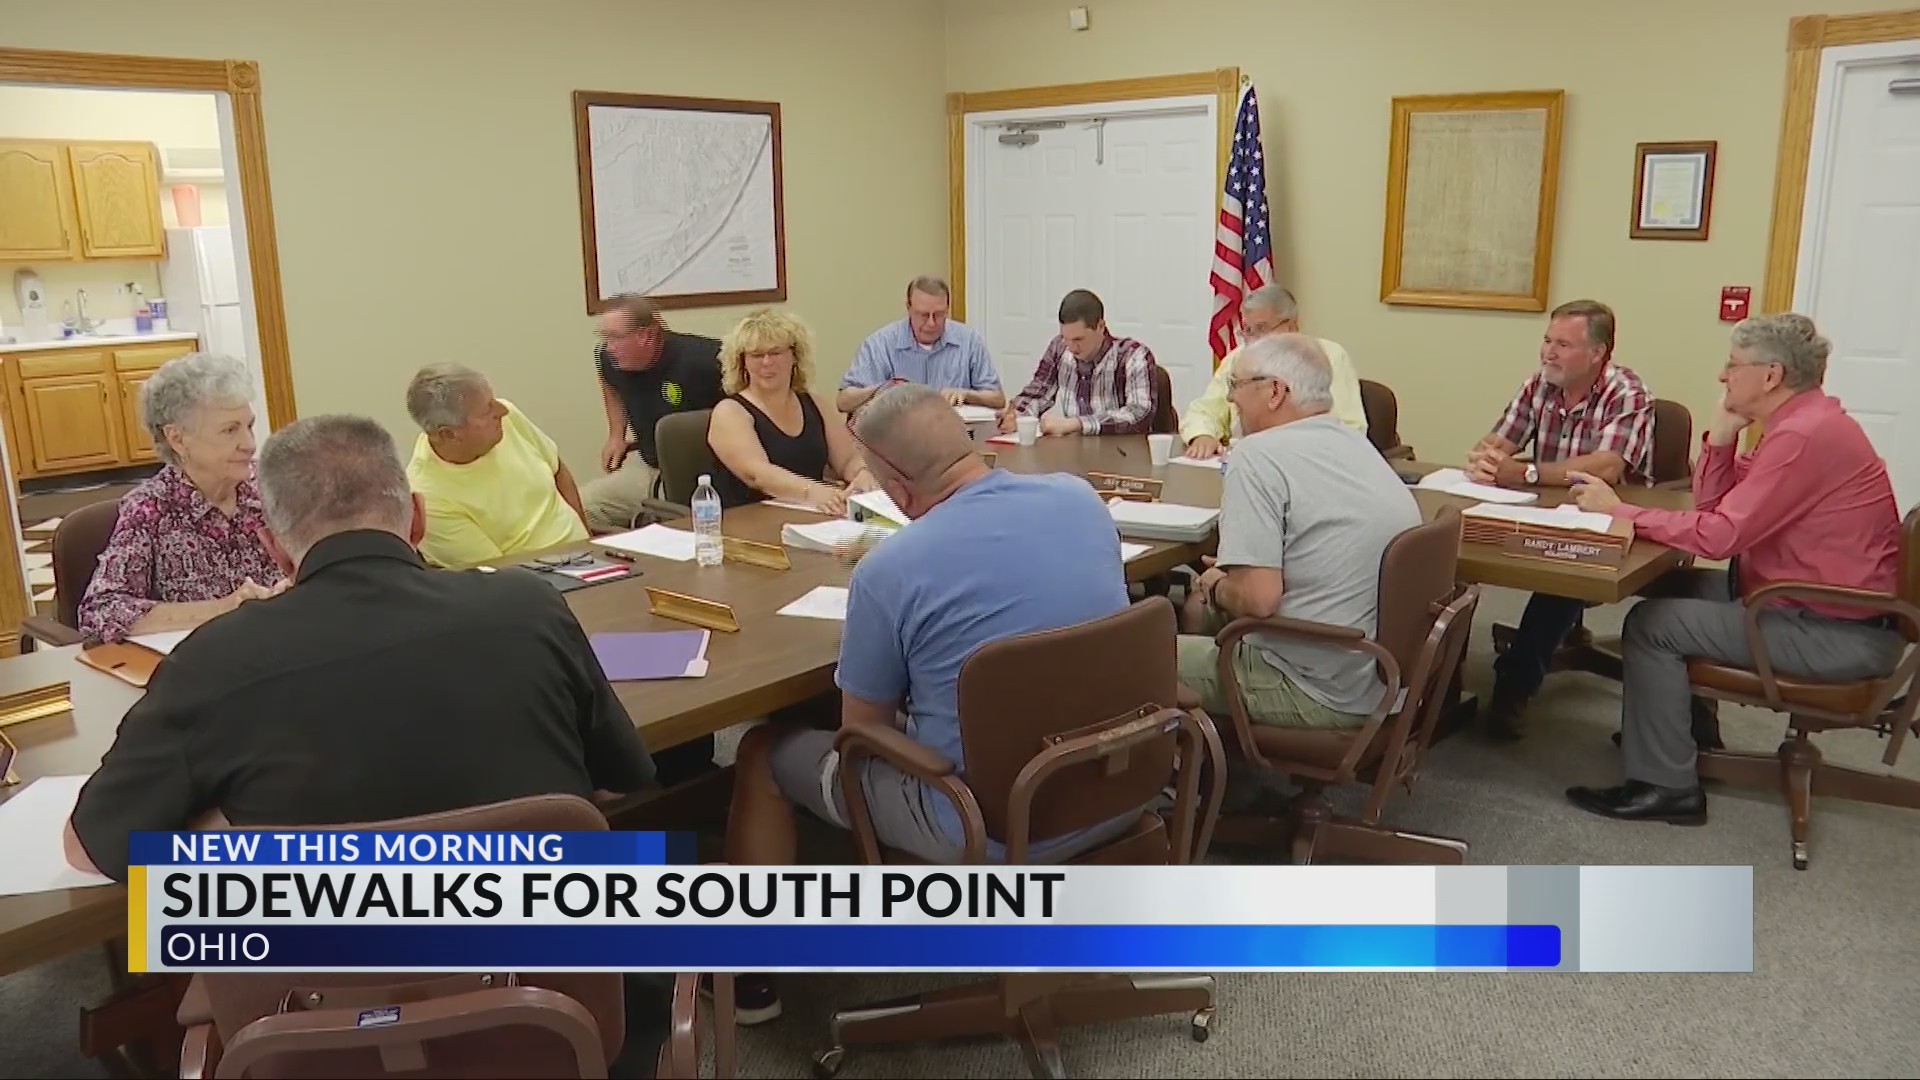 South Point gets funding for sidewalks